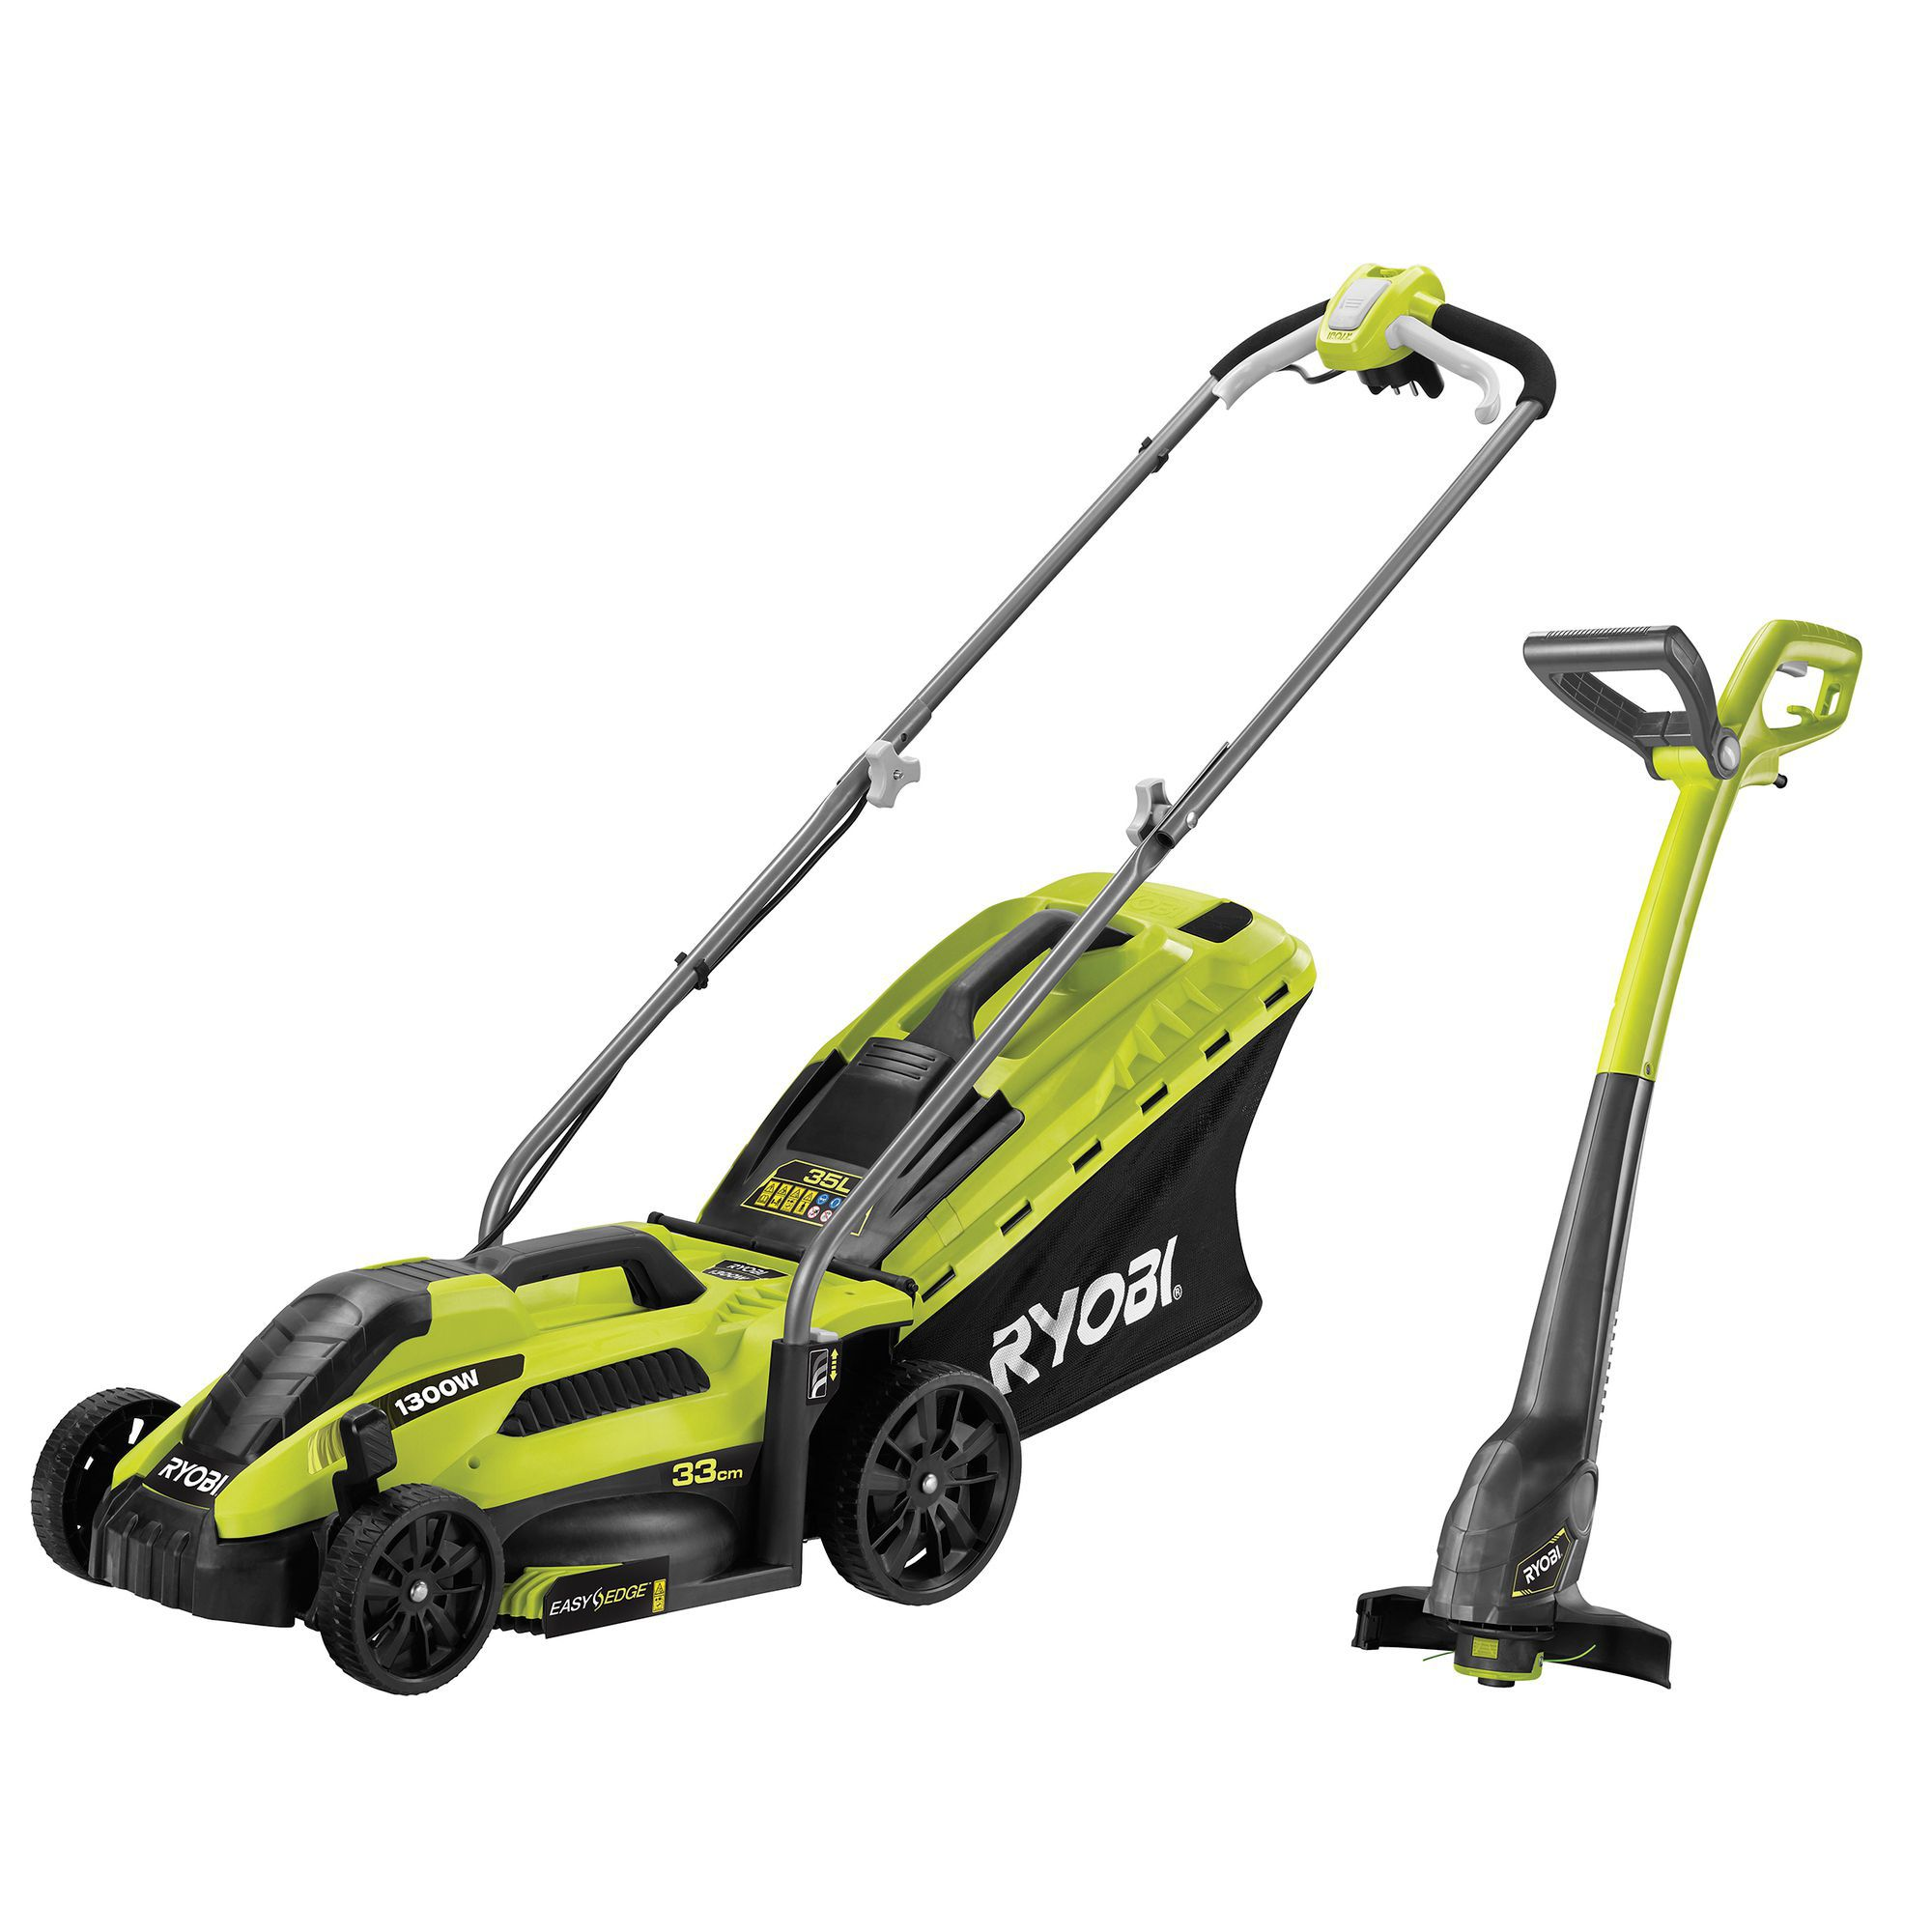 Unusual Ryobi Corded Lawnmower  Grass Trimmer  Departments  Diy At Bq With Marvelous Inflatable Garden Furniture Besides Walled Garden City  Guilds Furthermore Tesco Garden Toys With Divine Florence Italy Boboli Gardens Also Asian Restaurants Covent Garden In Addition French Restaurants Covent Garden And Redcliffe Gardens As Well As Bq Garden Furniture Sets Additionally Landscape Gardeners Cheltenham From Diycom With   Marvelous Ryobi Corded Lawnmower  Grass Trimmer  Departments  Diy At Bq With Divine Inflatable Garden Furniture Besides Walled Garden City  Guilds Furthermore Tesco Garden Toys And Unusual Florence Italy Boboli Gardens Also Asian Restaurants Covent Garden In Addition French Restaurants Covent Garden From Diycom